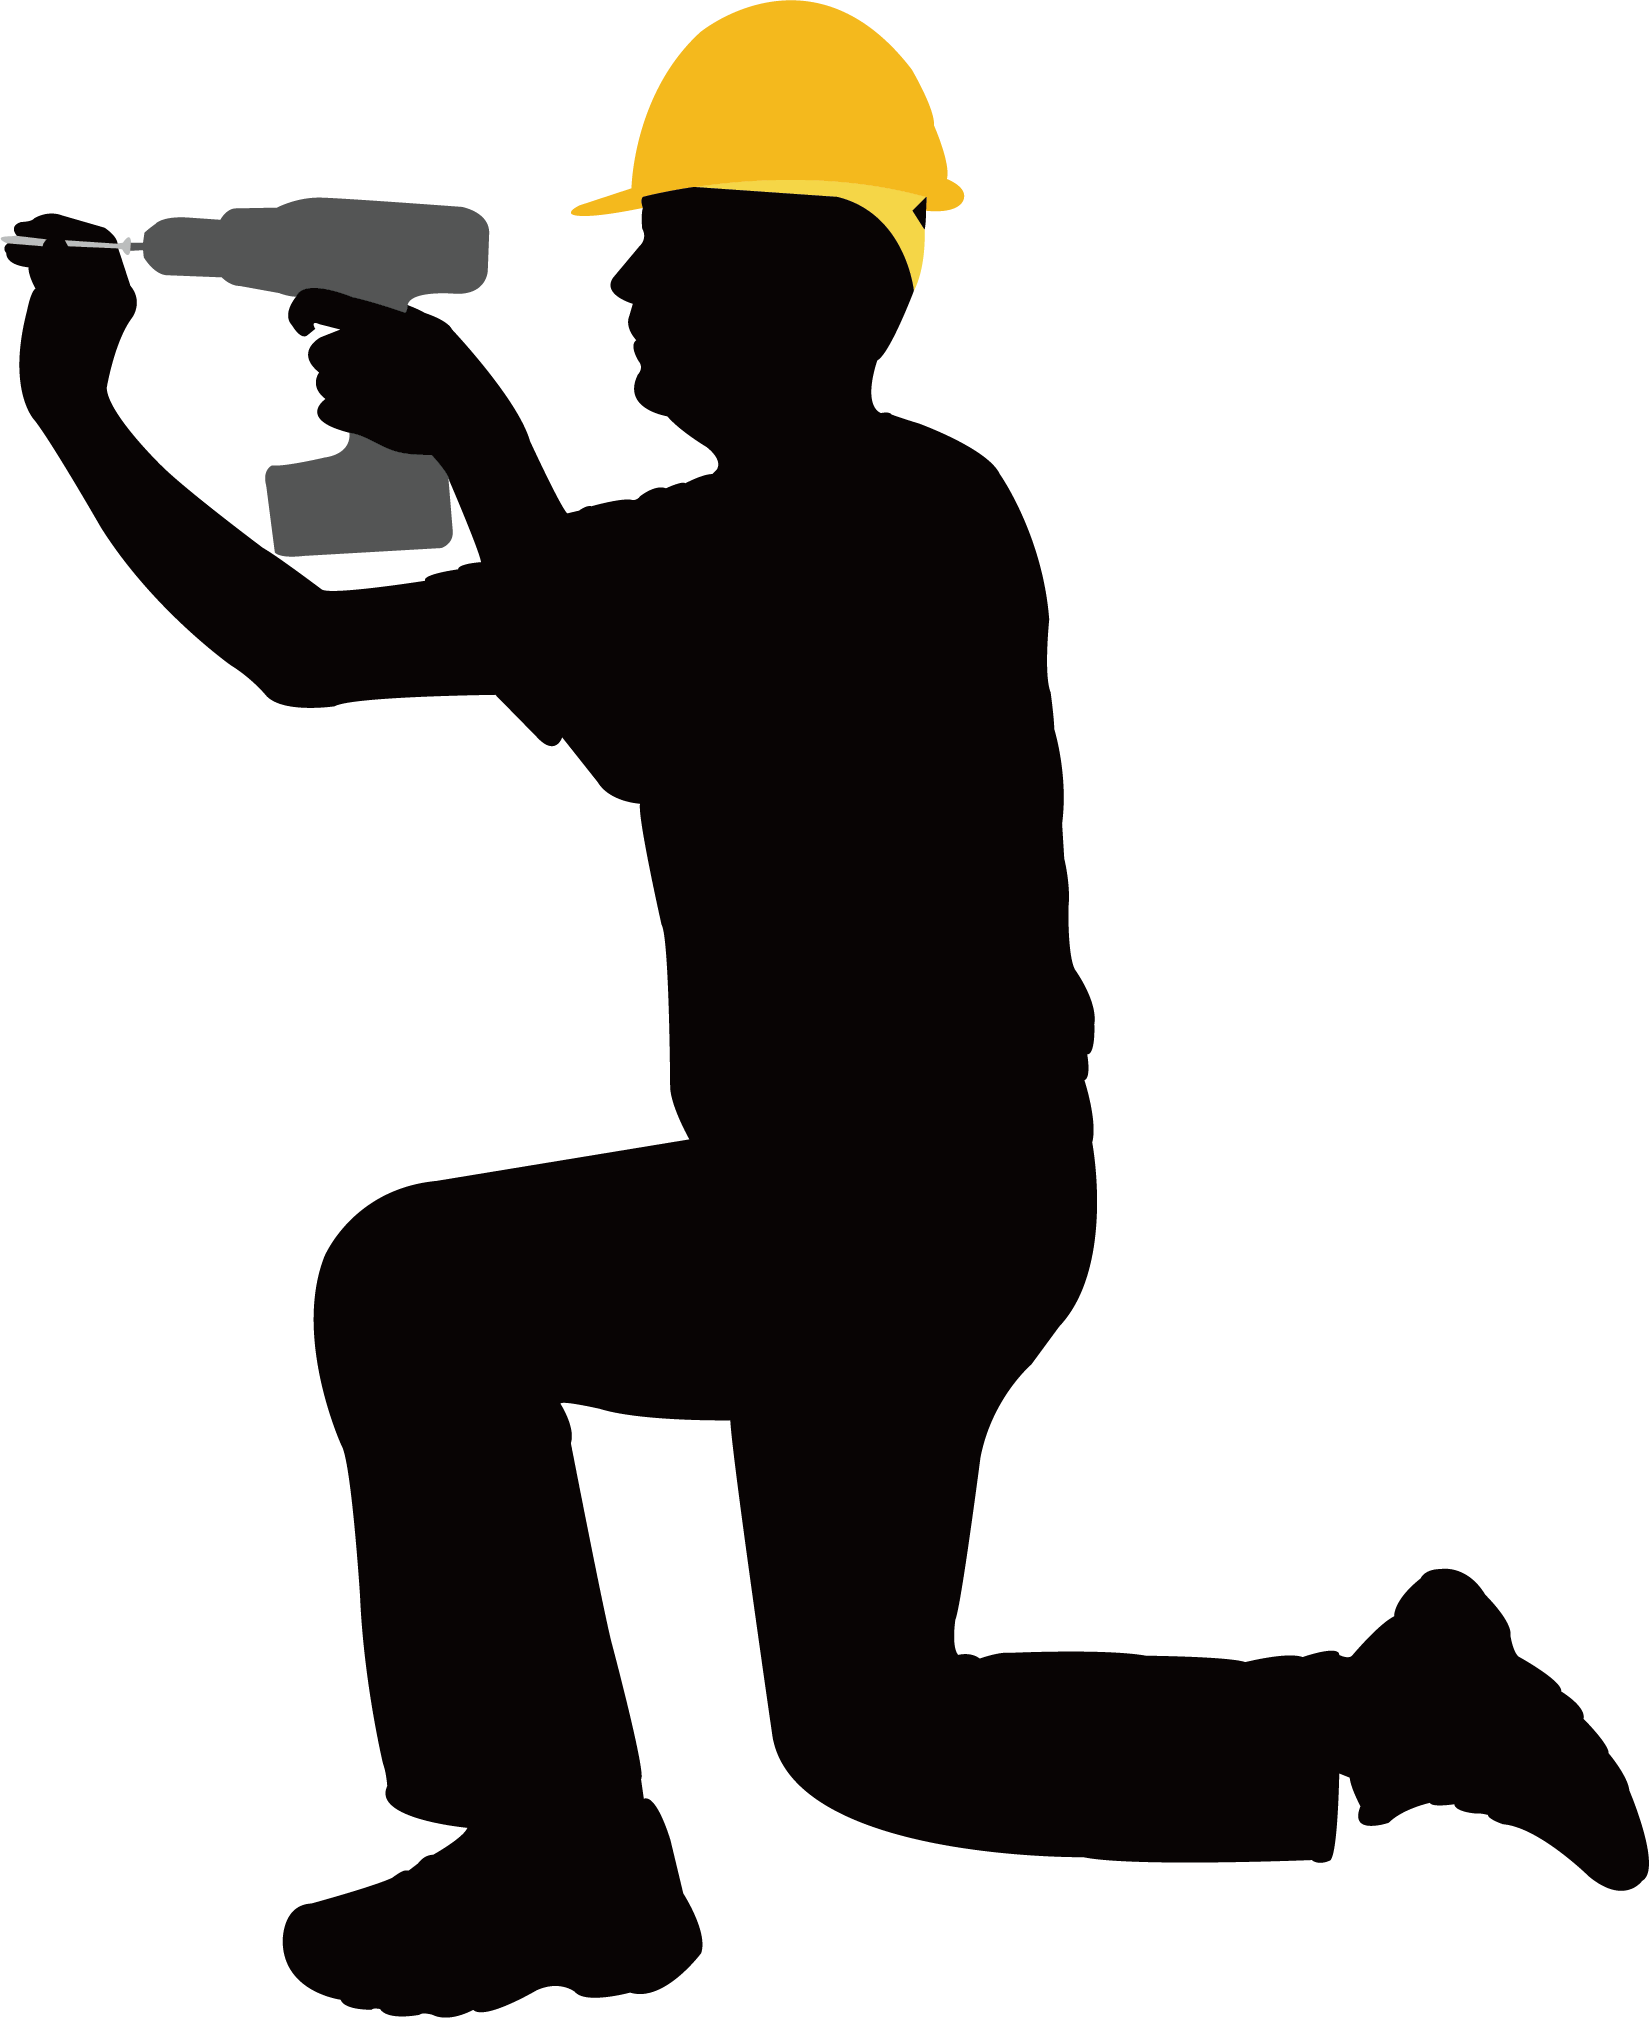 1649x2018 Construction Worker Laborer Architectural Engineering Clip Art